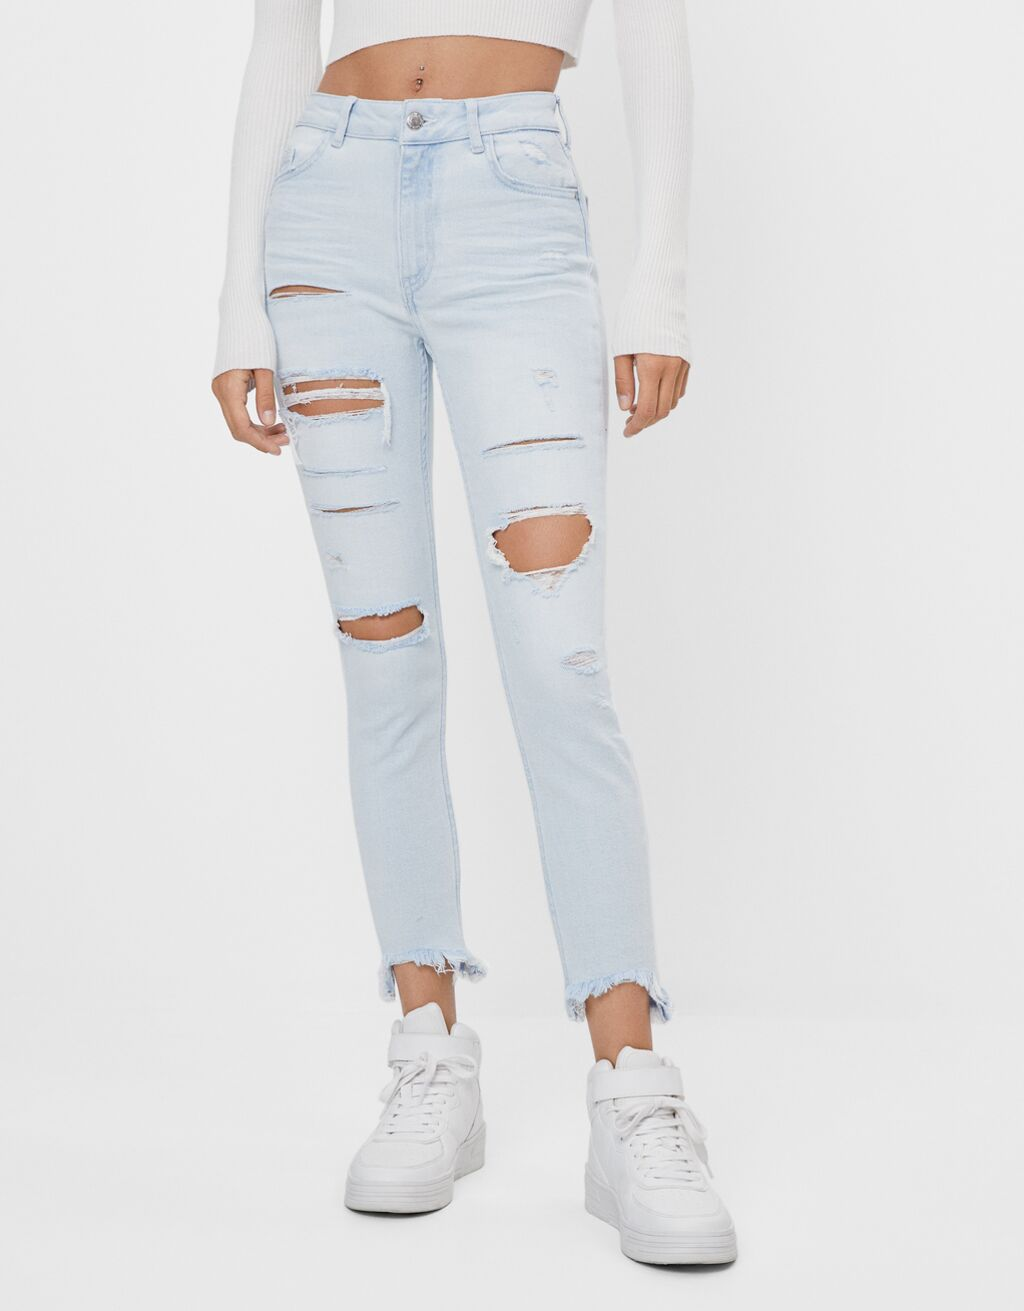 Jeans Skinny Low rotos